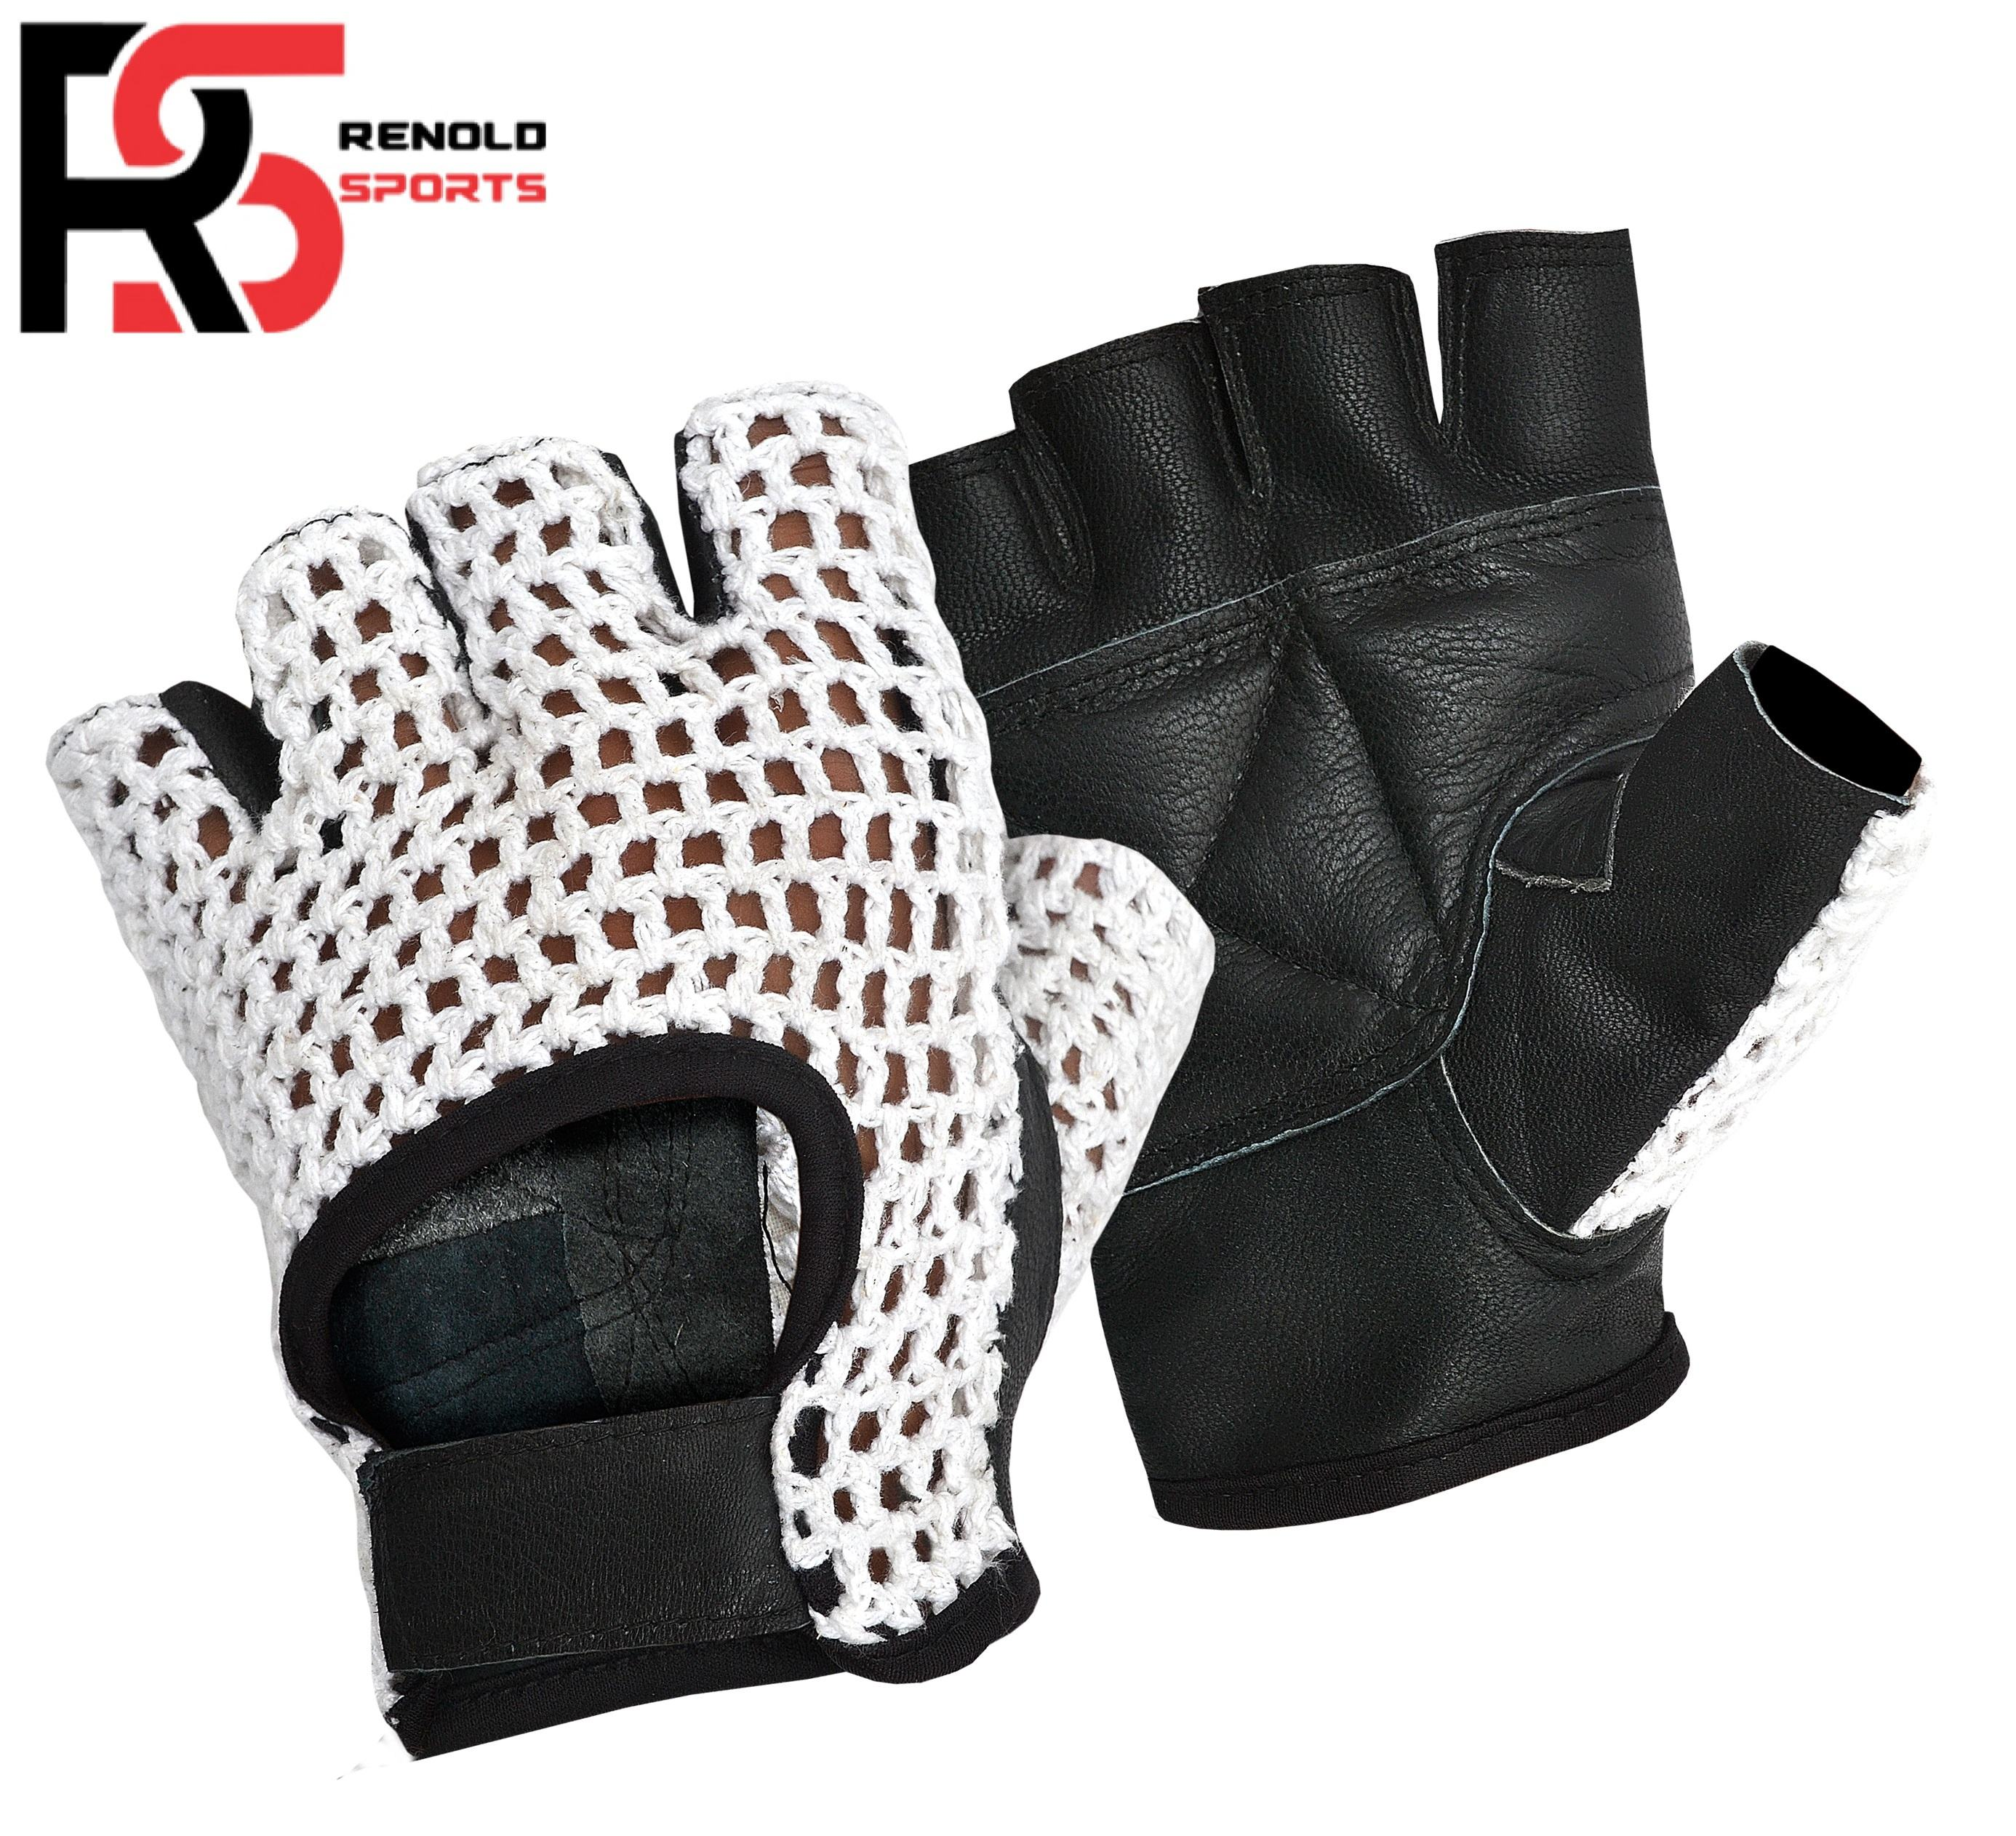 CHEAP PRICE WEIGHT LIFTING GLOVES WHOLESALE CUSTOM SIZE BODYBUILDING GLOVE LONG LASTING LEATHER CROCHET FITNESS l RENOLD SPORTS